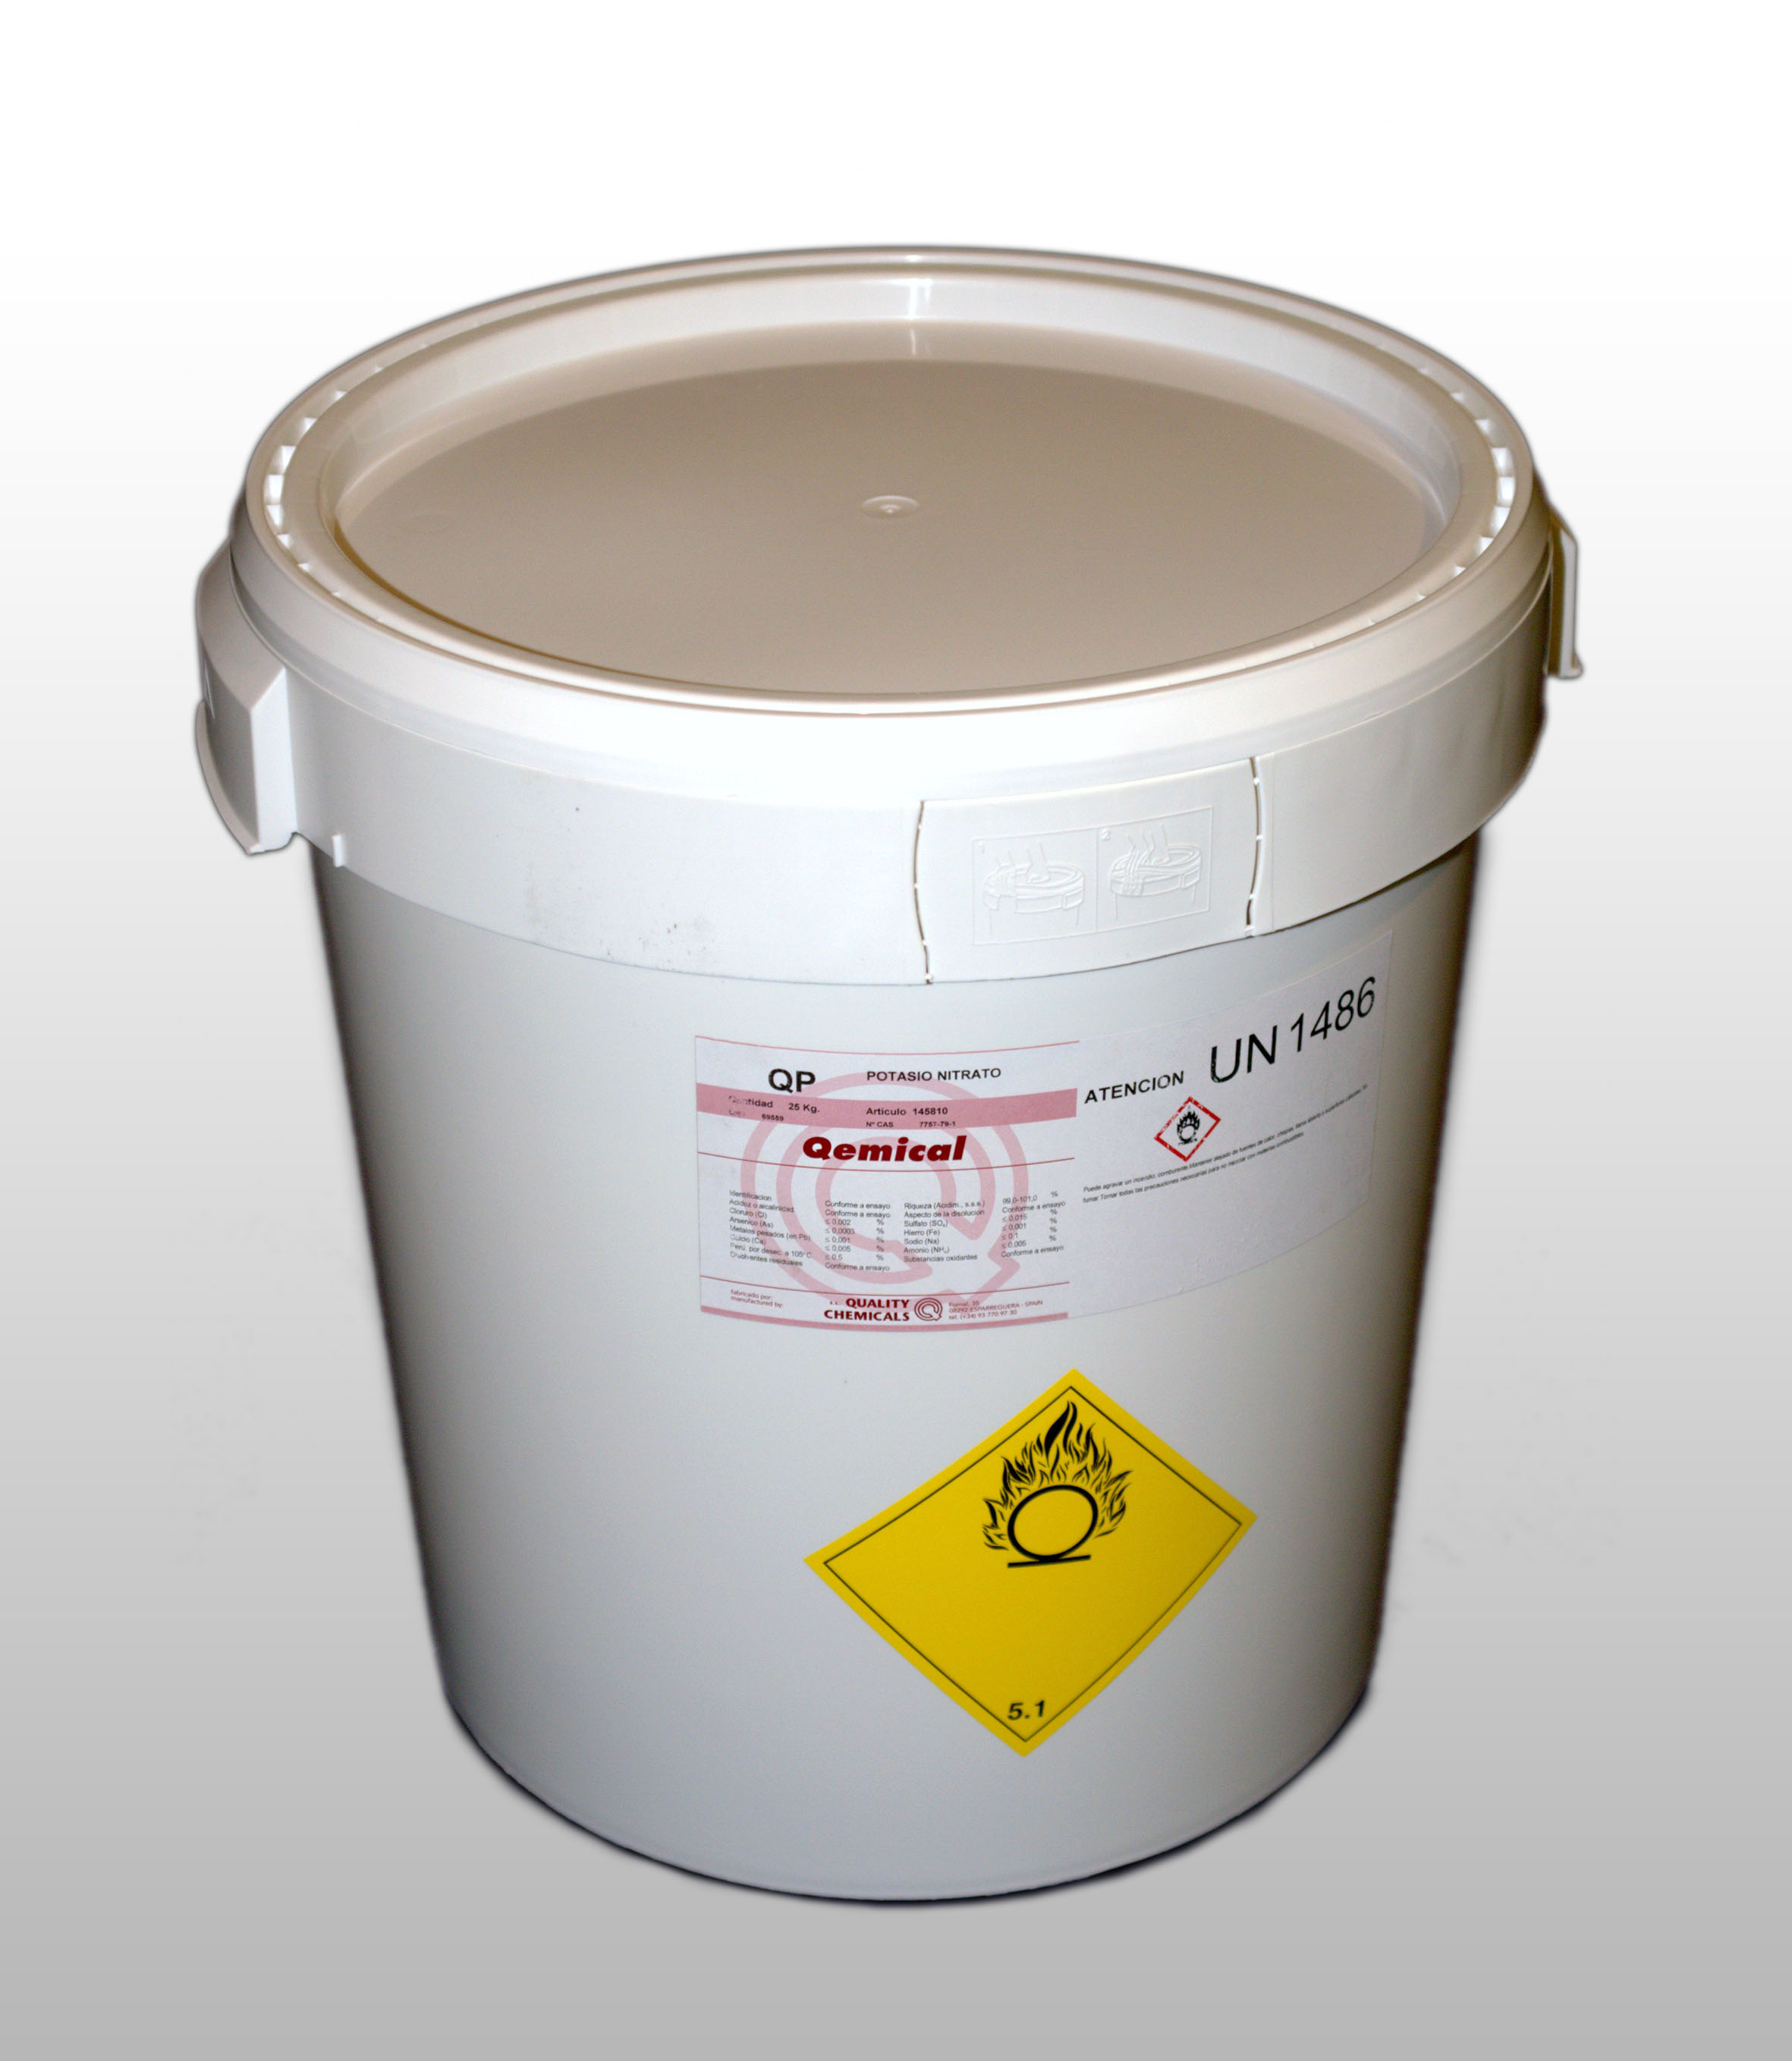 PLASTIC DRUM 30 L (FOR SOLIDS), 2 internal bags